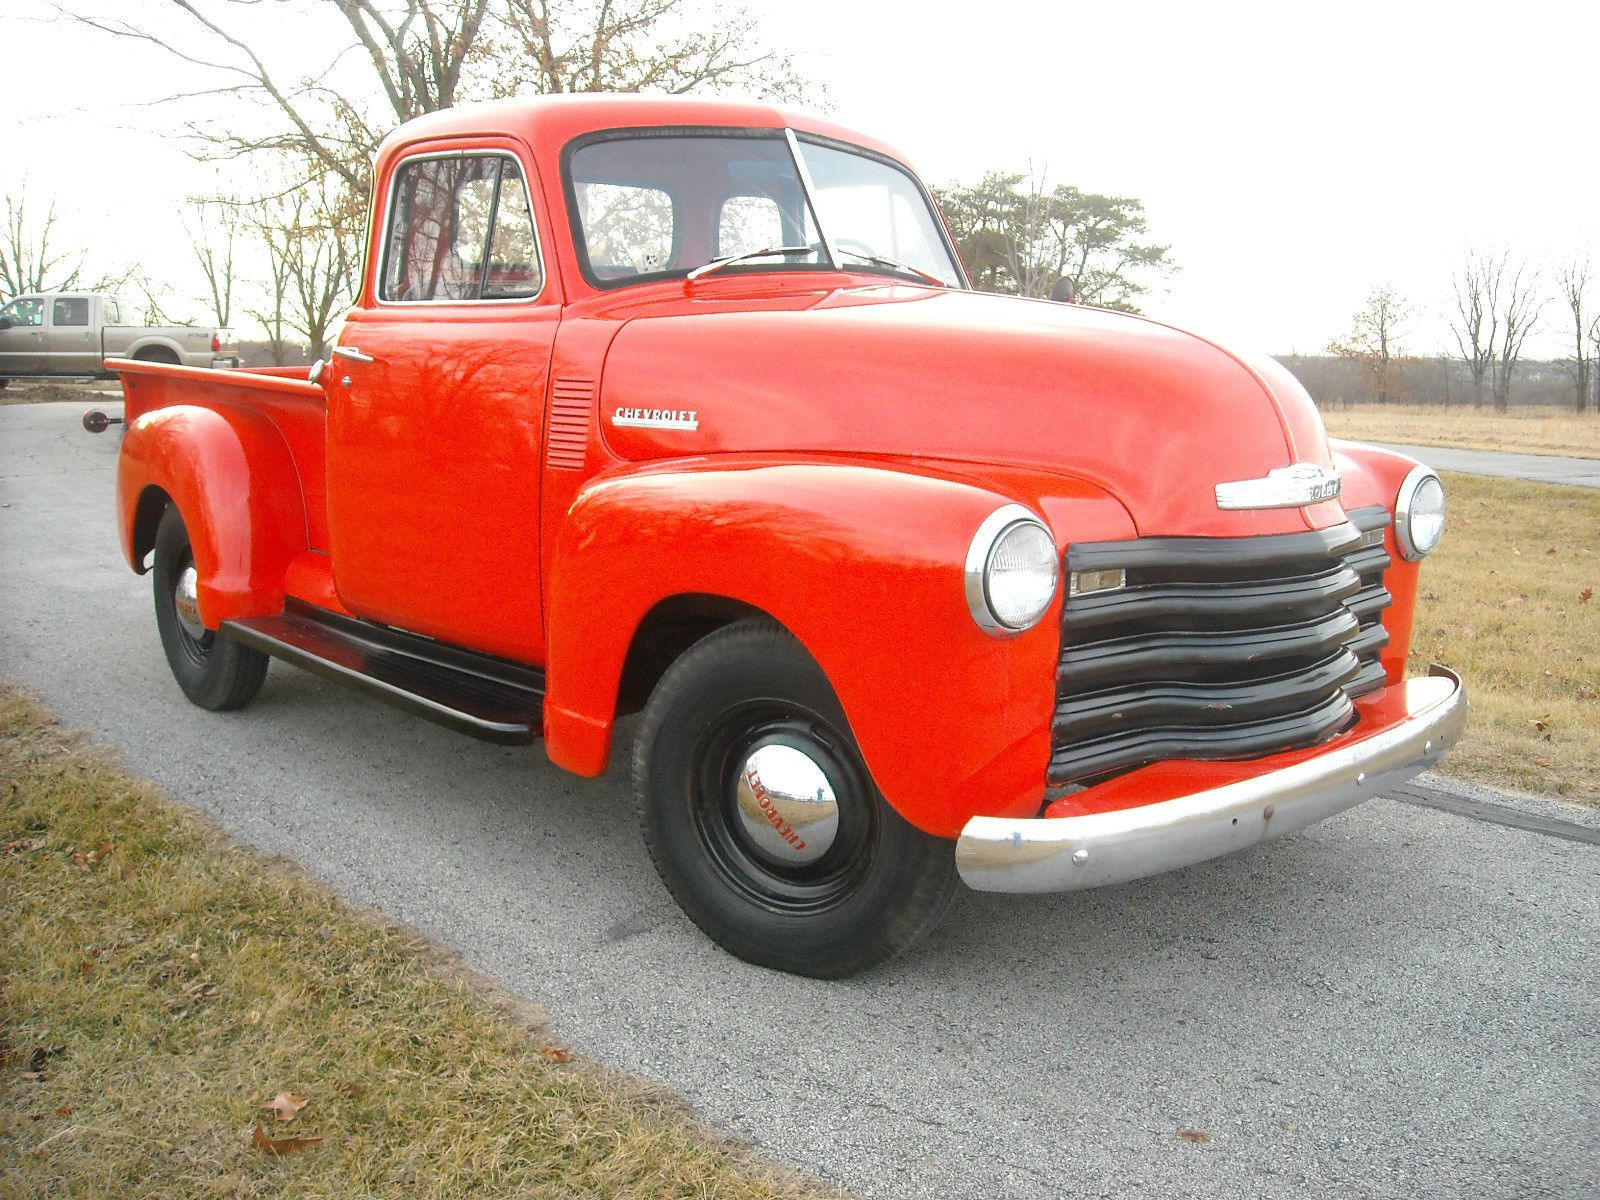 1951 Chevy 1 2 Ton Pickup Truck Rare 5 Window Deluxe Cab 53 Chevy Truck 1951 Chevy Truck Trucks